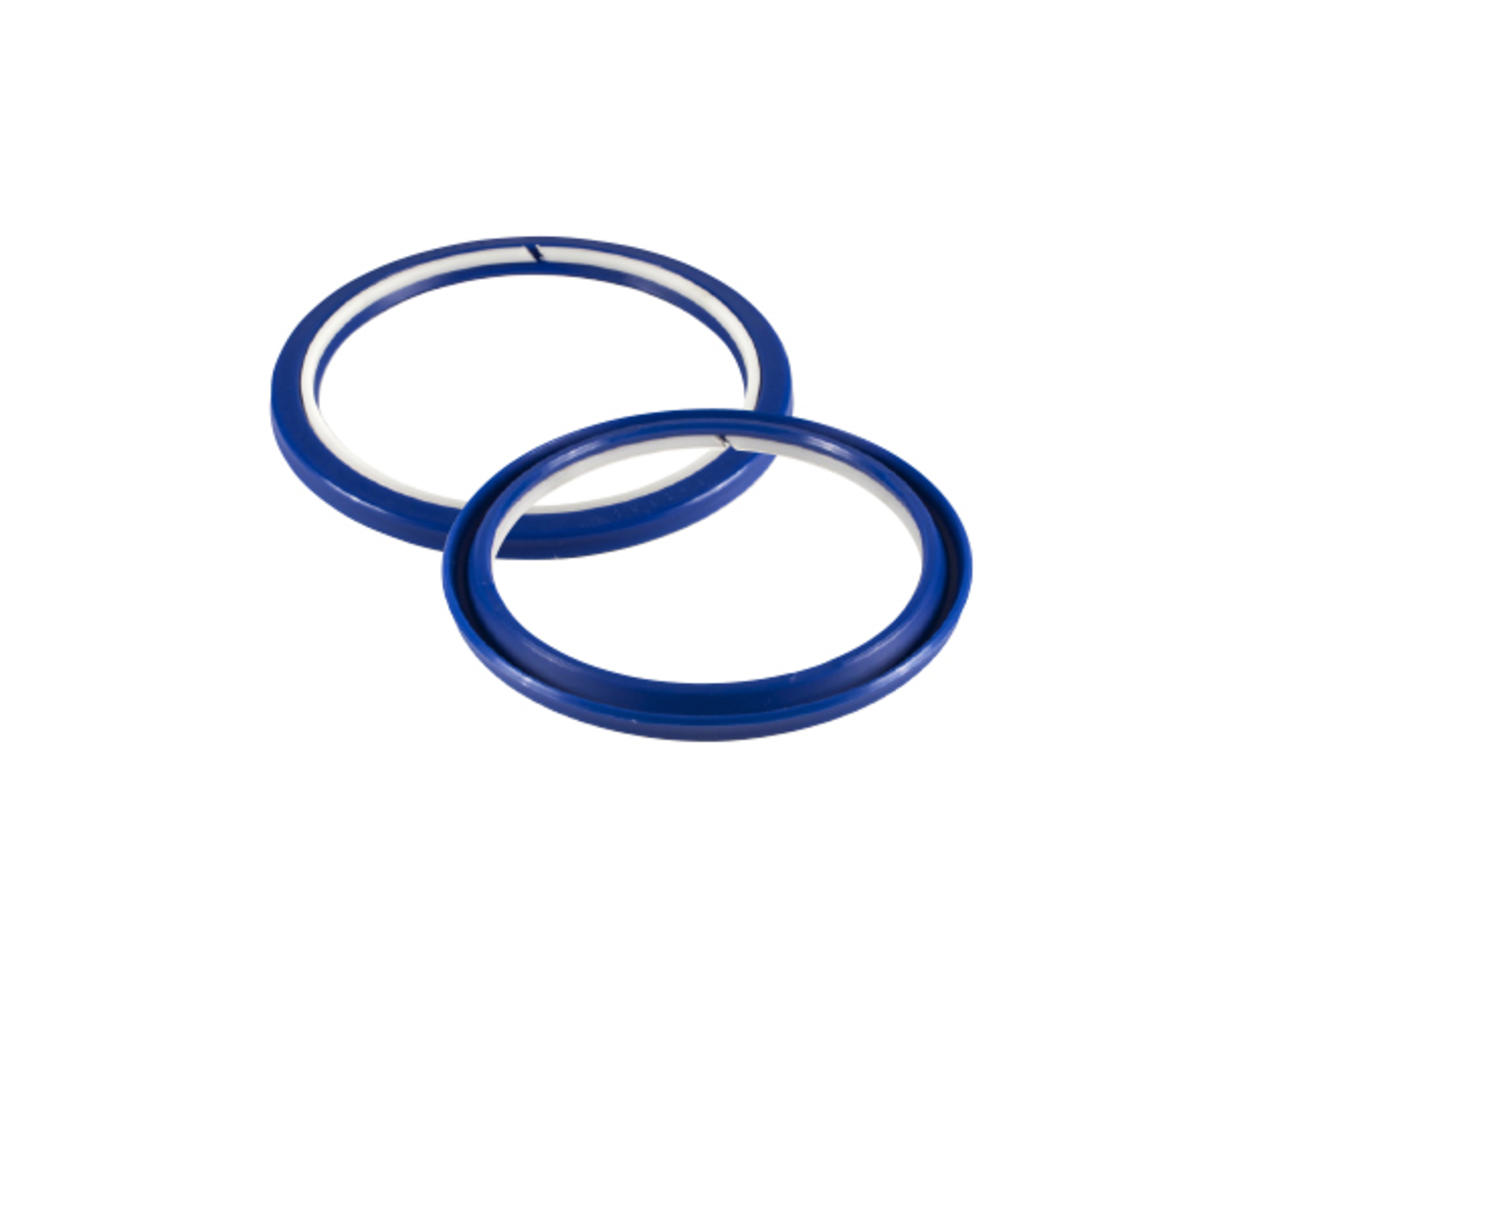 Buffert ring K29 PU